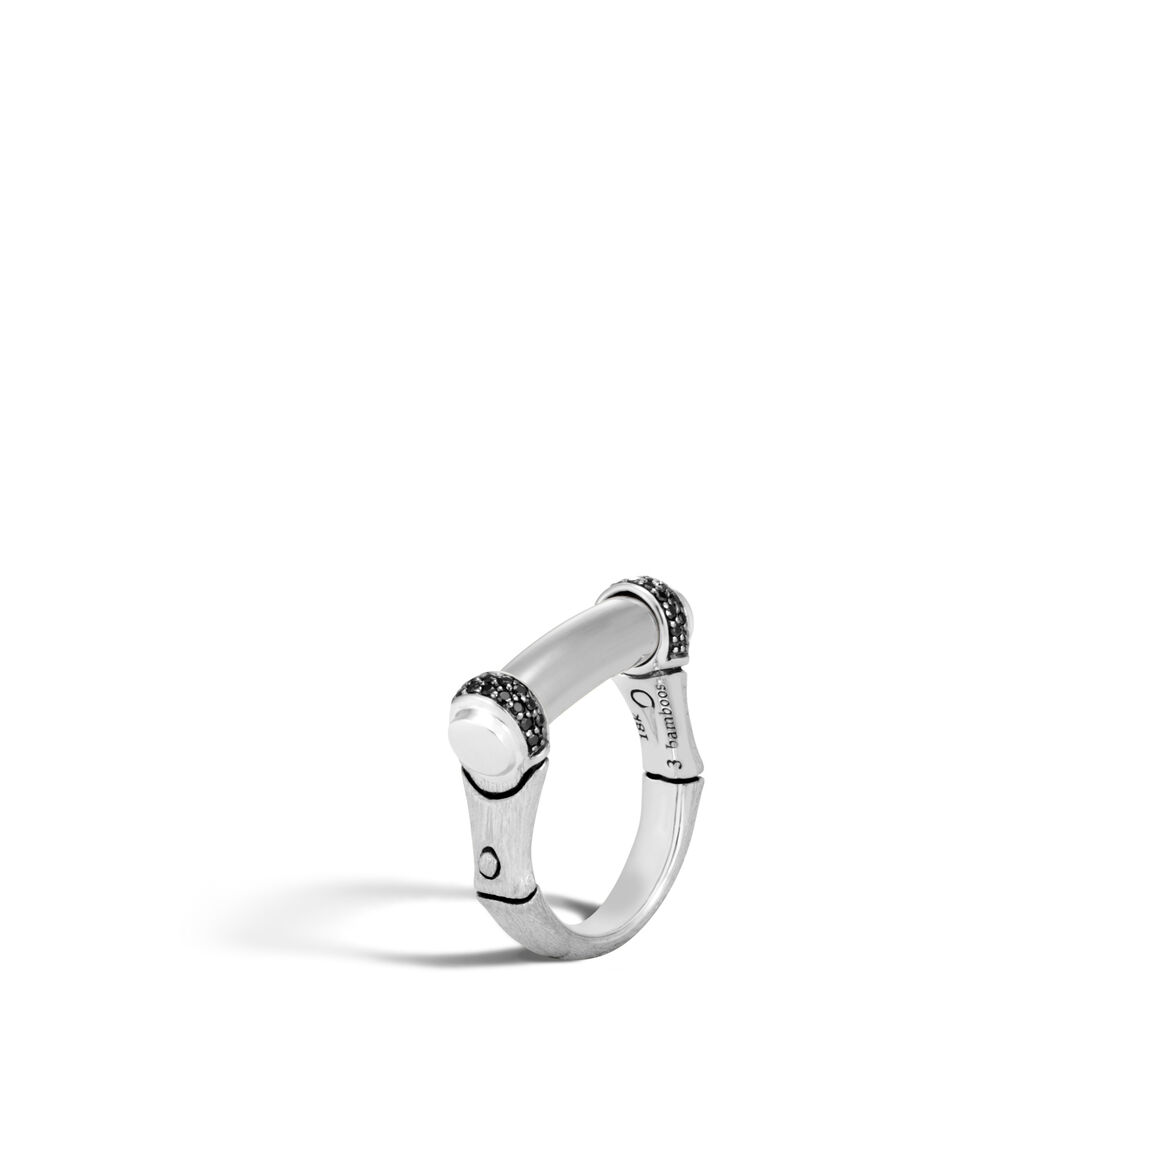 Bamboo 5MM Band Ring in Brushed Silver with Gemstone